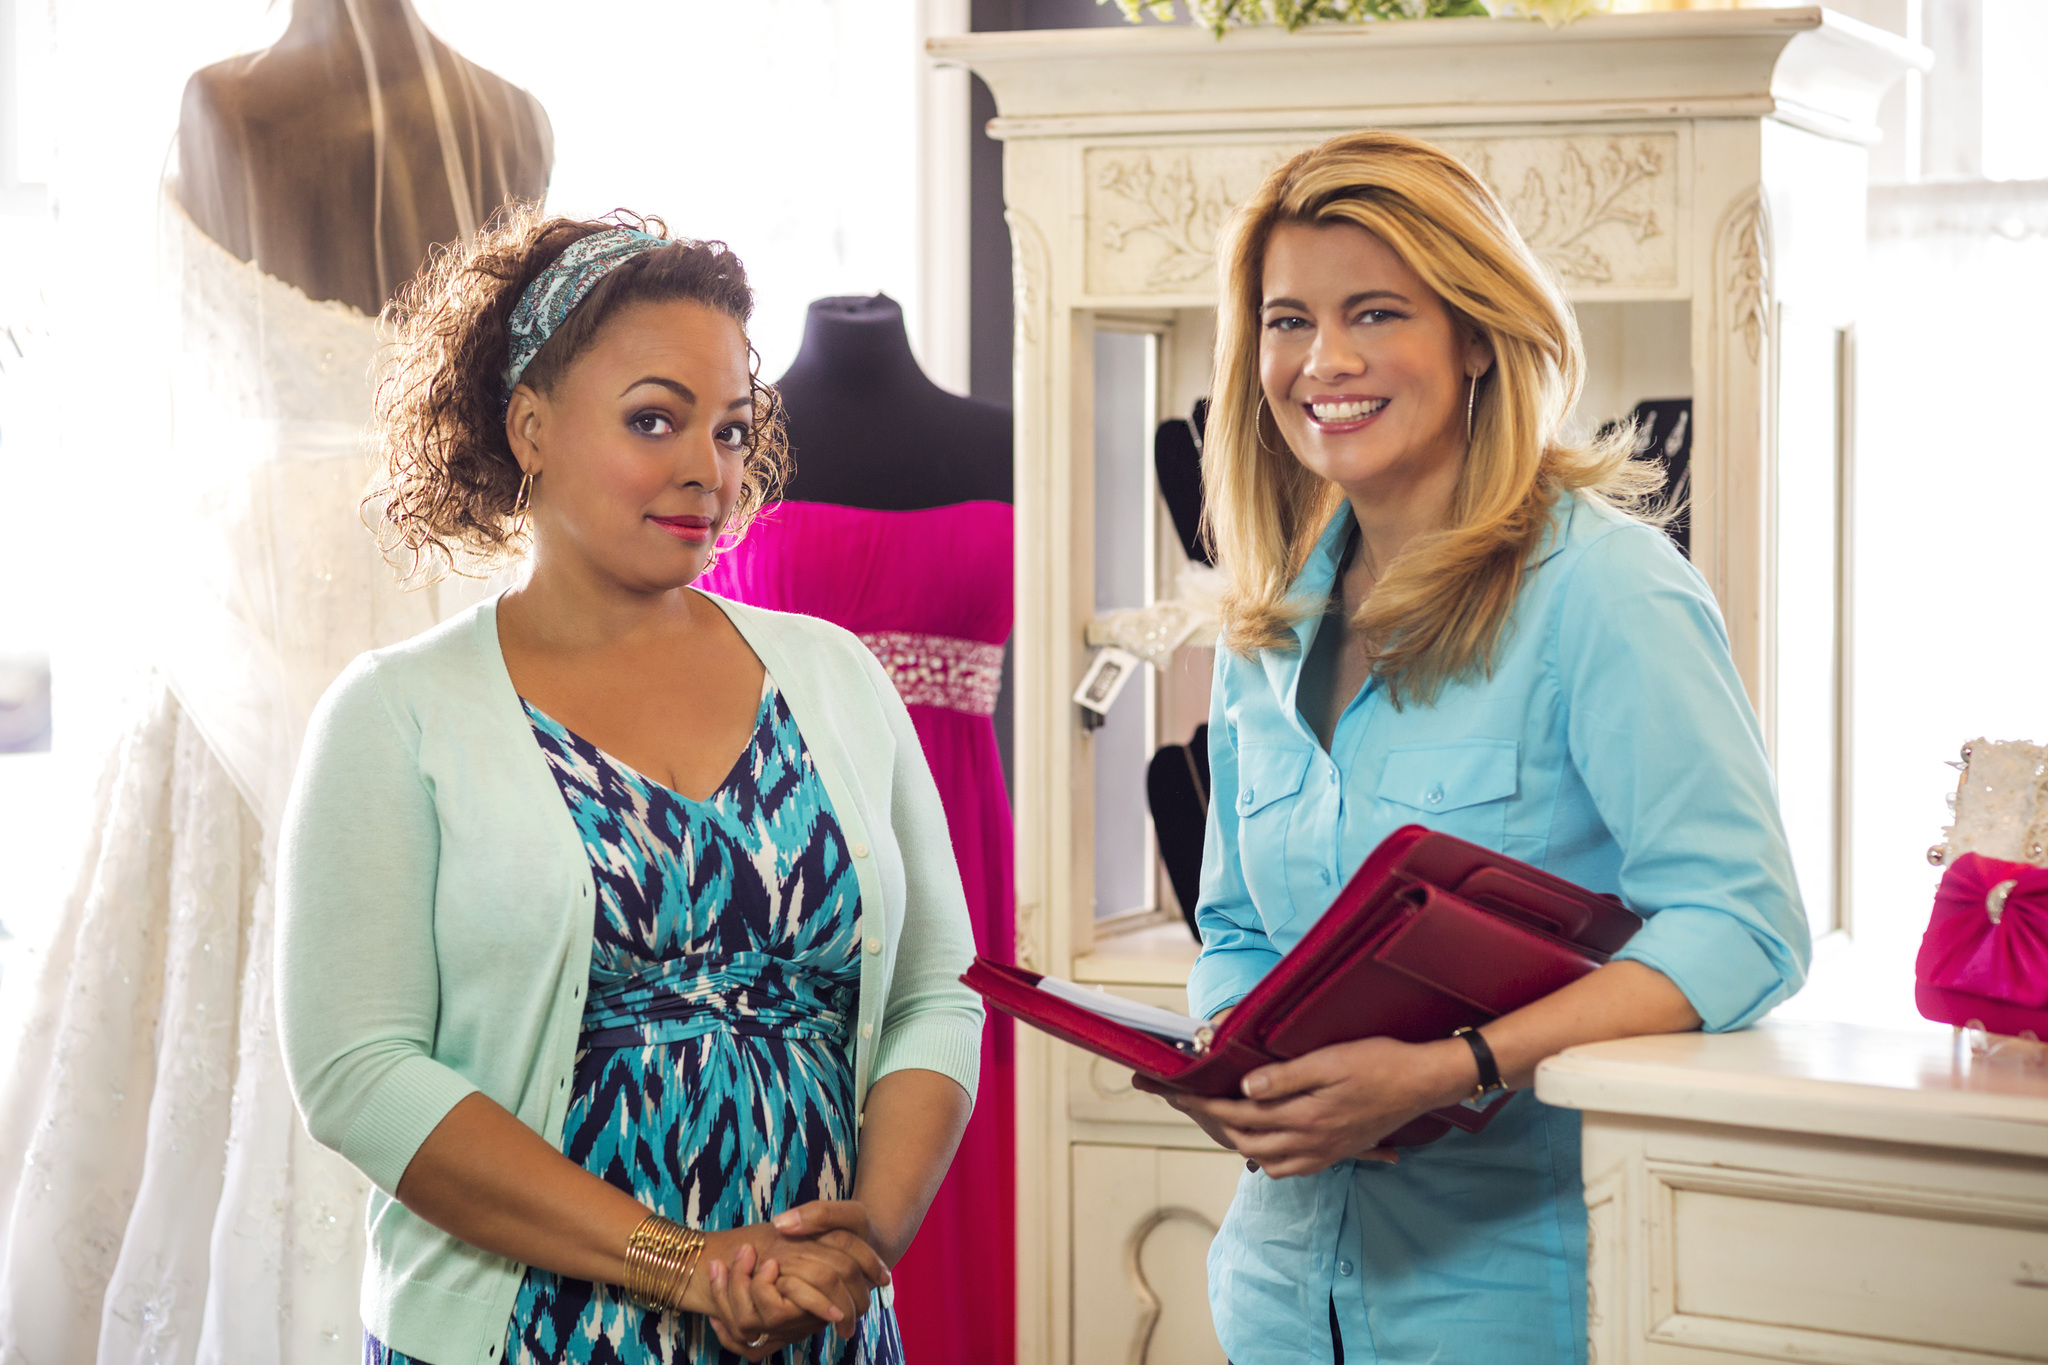 Kim Fields and Lisa Whelchel in For Better or for Worse (2014)